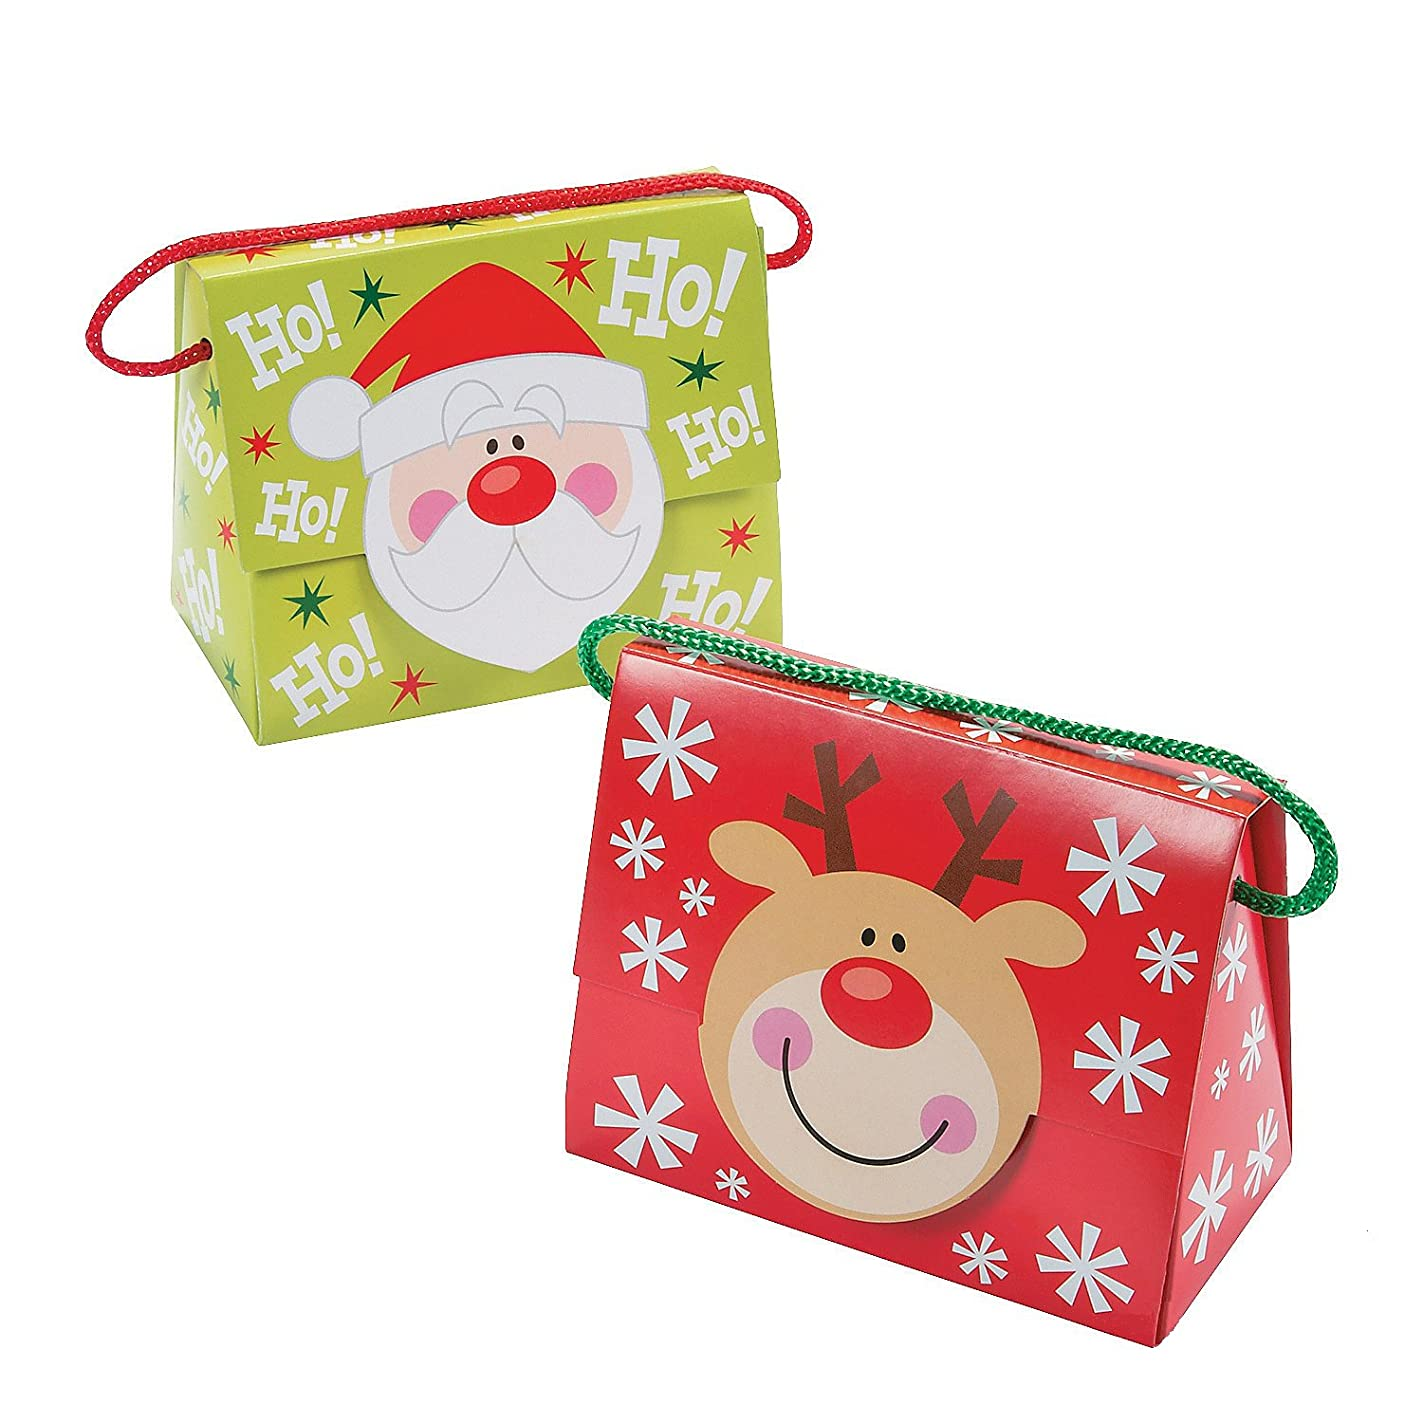 Fun Express Christmas Tent Boxes with Handle, 5 X 2 3/4 X 4 1/4-Inch with 4-Inch Handles (Pack of 12) yhi70530337